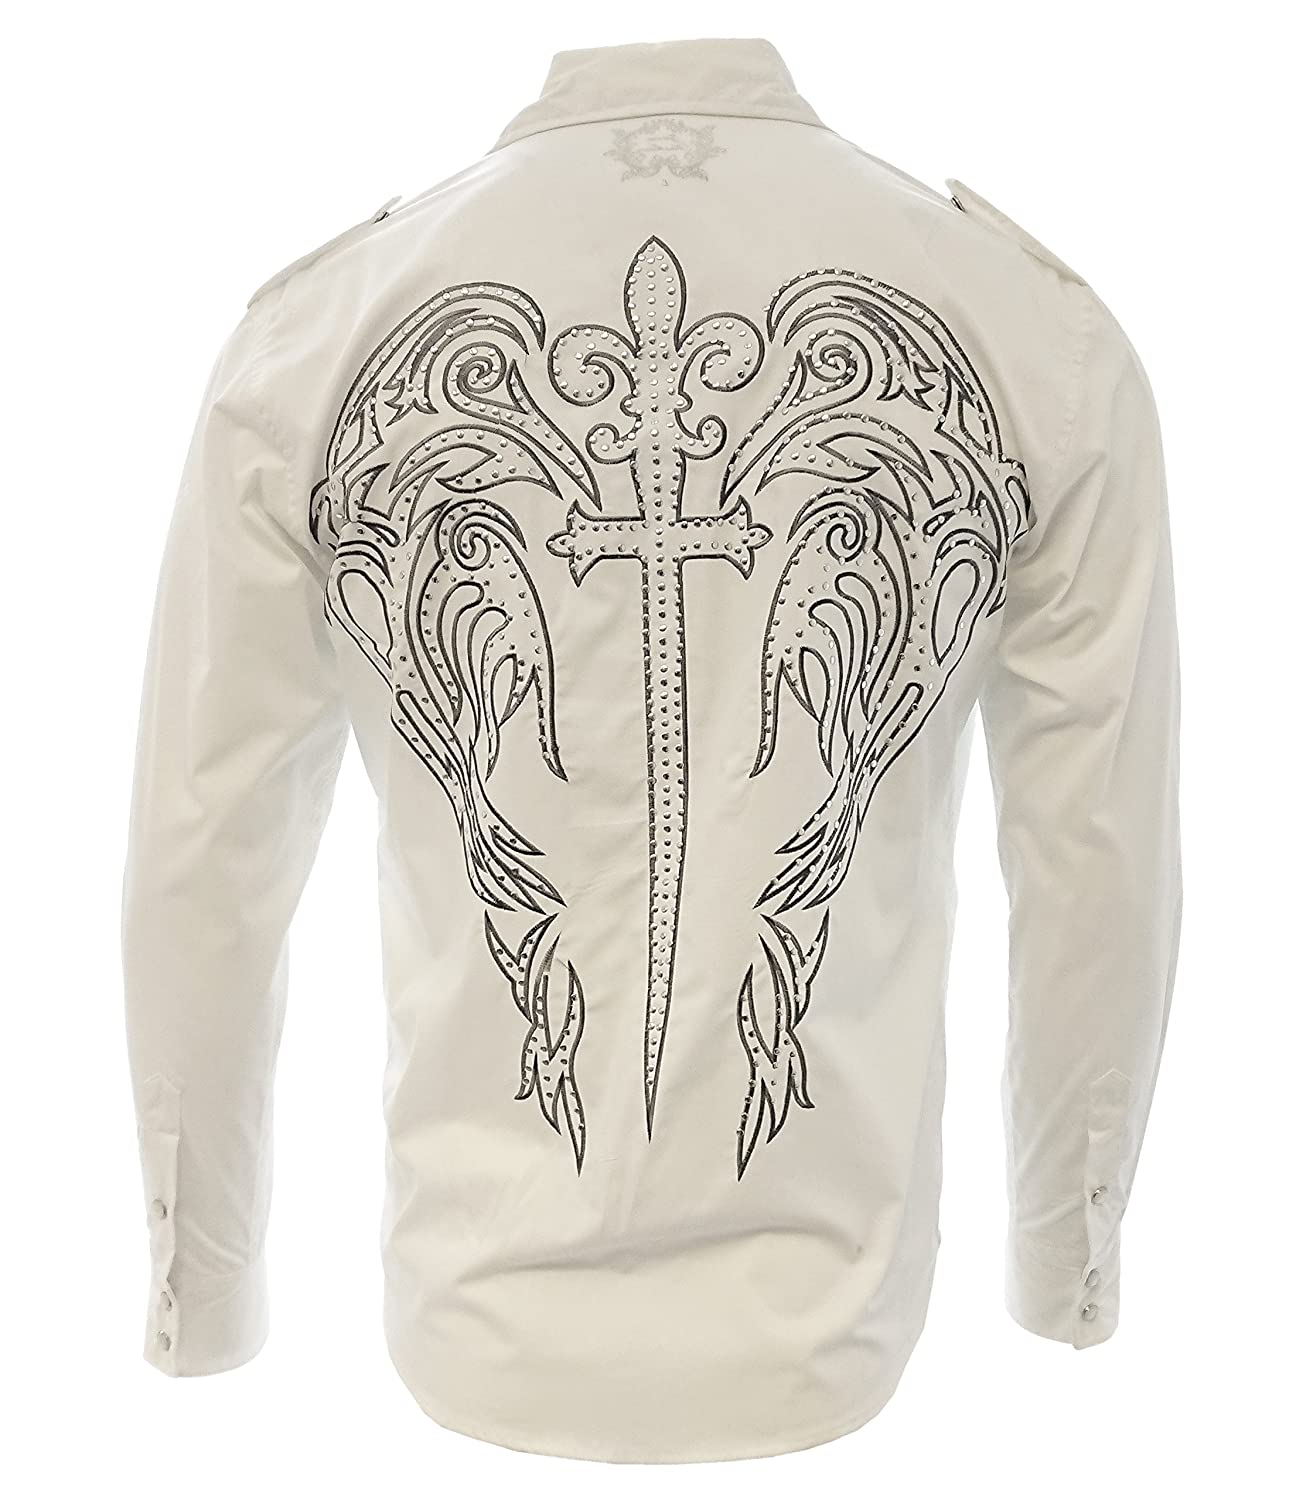 Zava Fashion Cowboy Shirt Long Sleeve Camisa Vaquera Western Wear with Embroidered Design